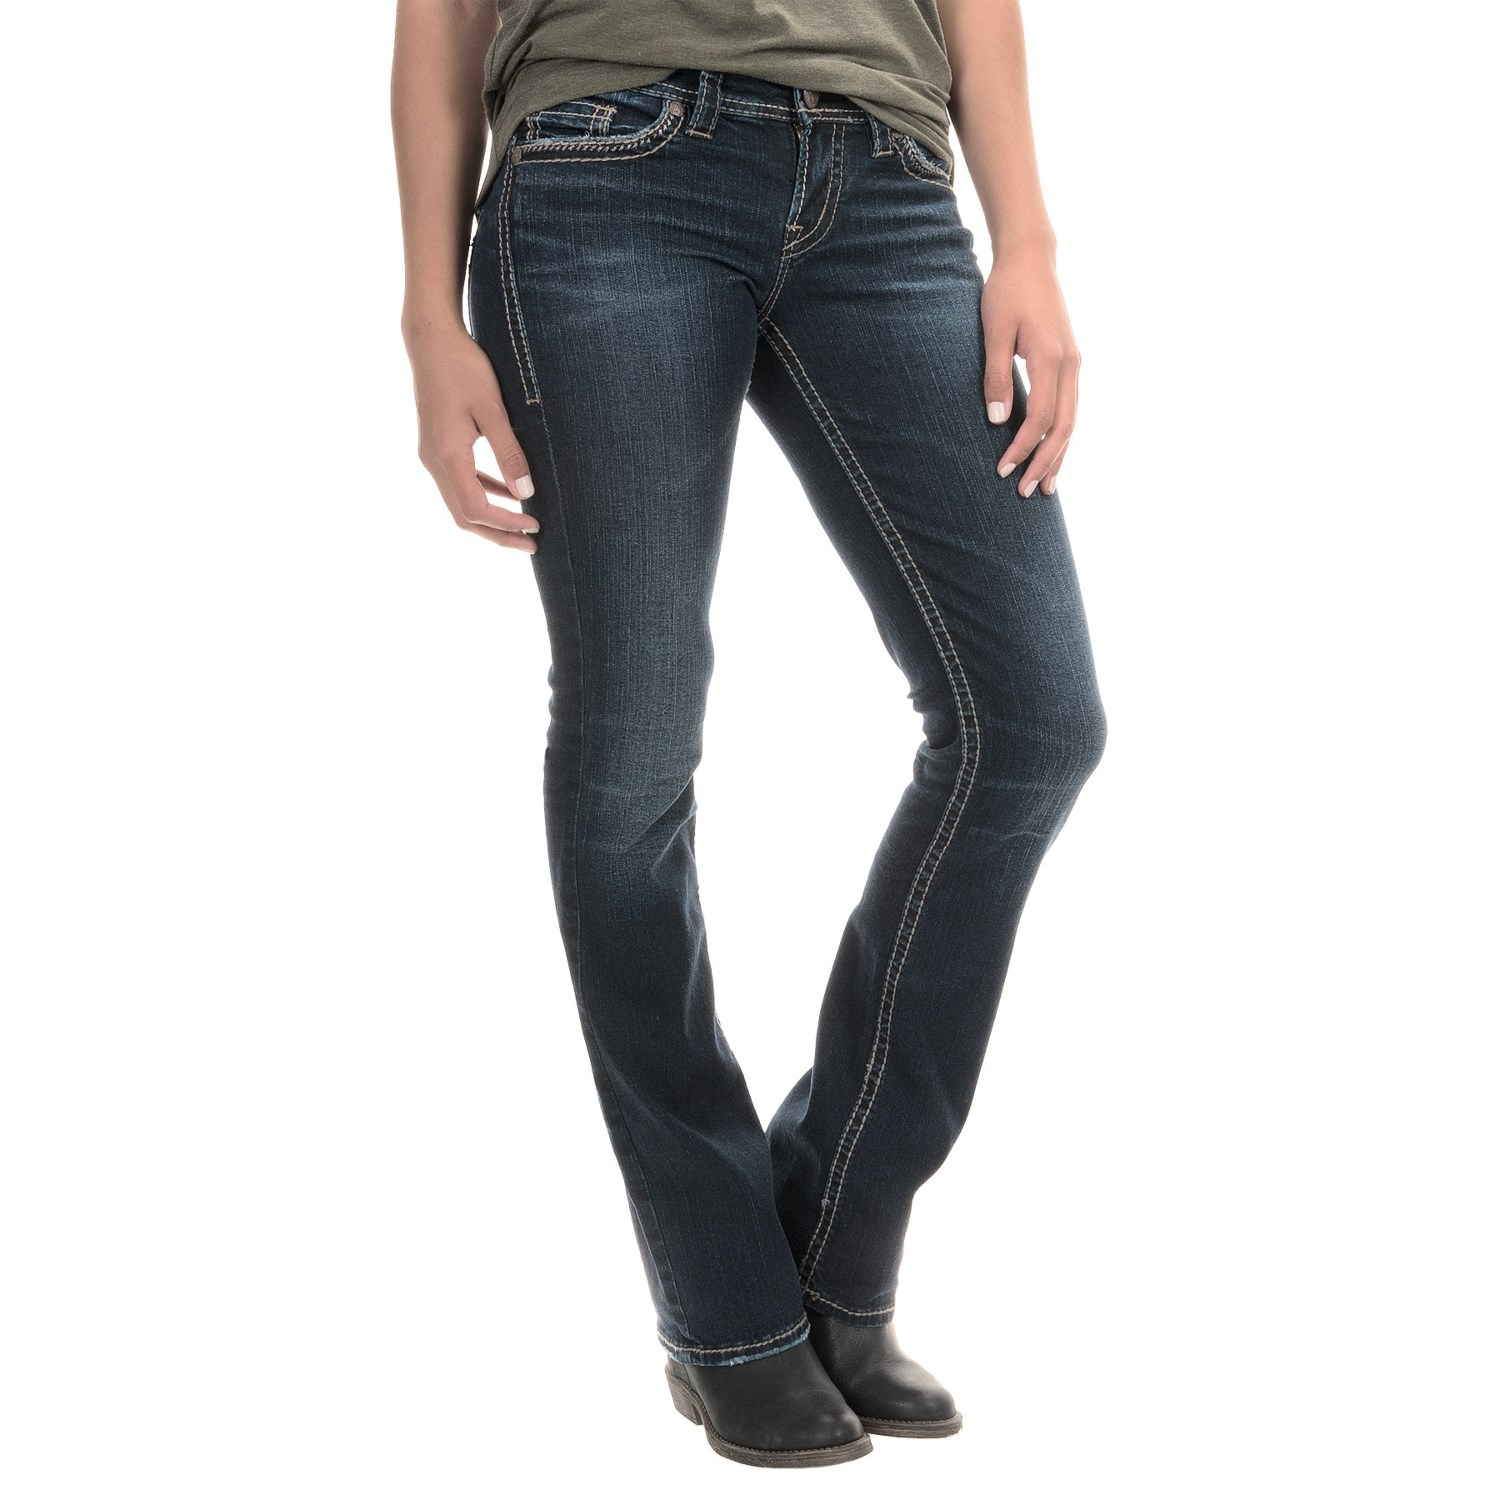 Aiko Silver Jeans Clearance - Jeans Am